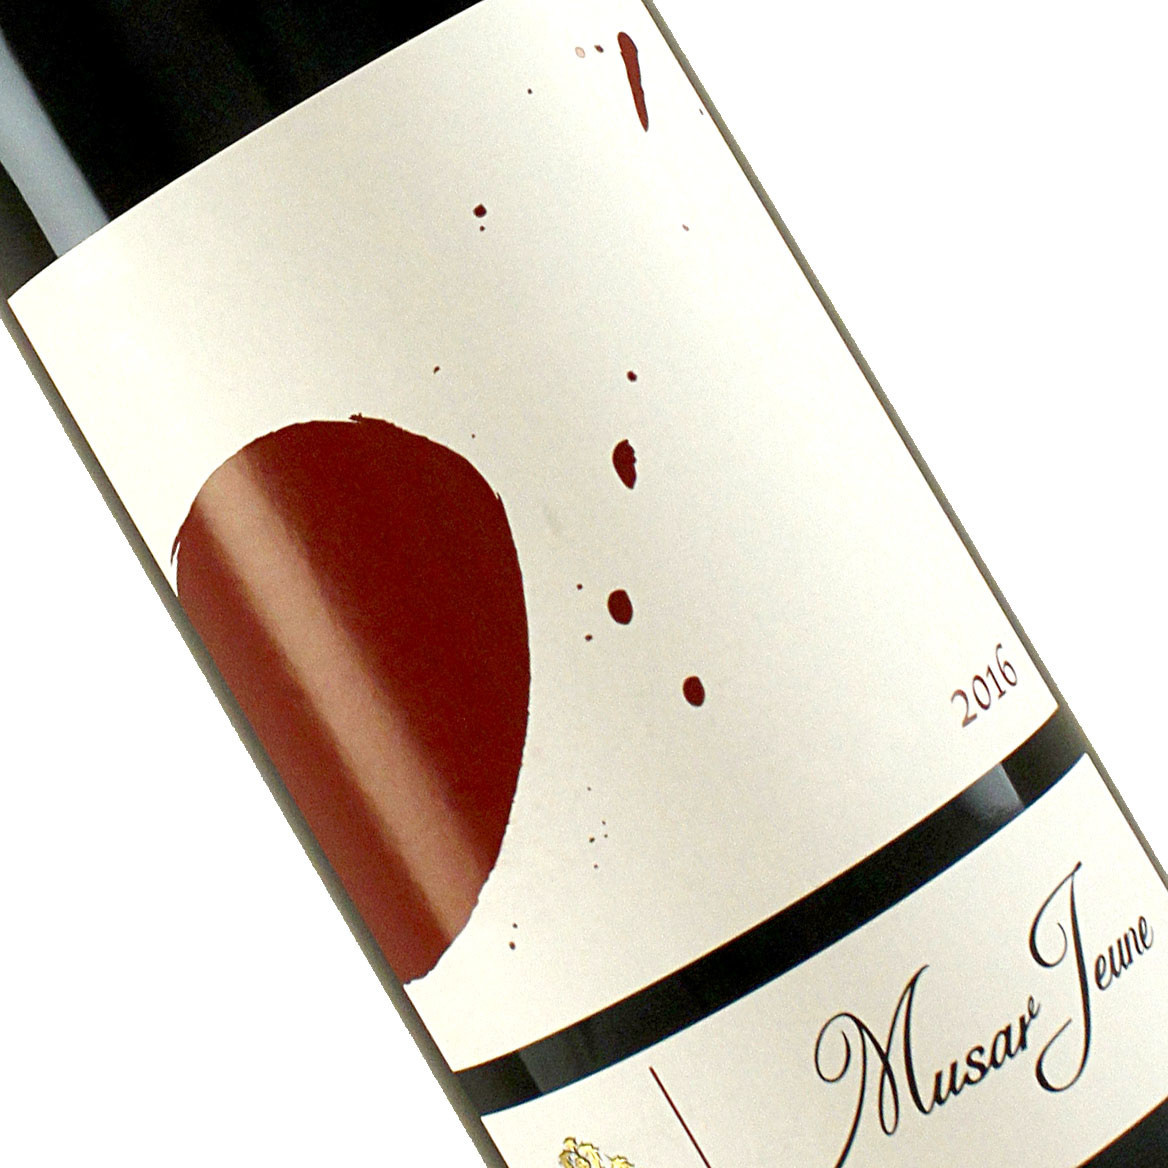 Chateau Musar 2017 Jeune Rouge Red Wine, Bekka Valley Lebanon